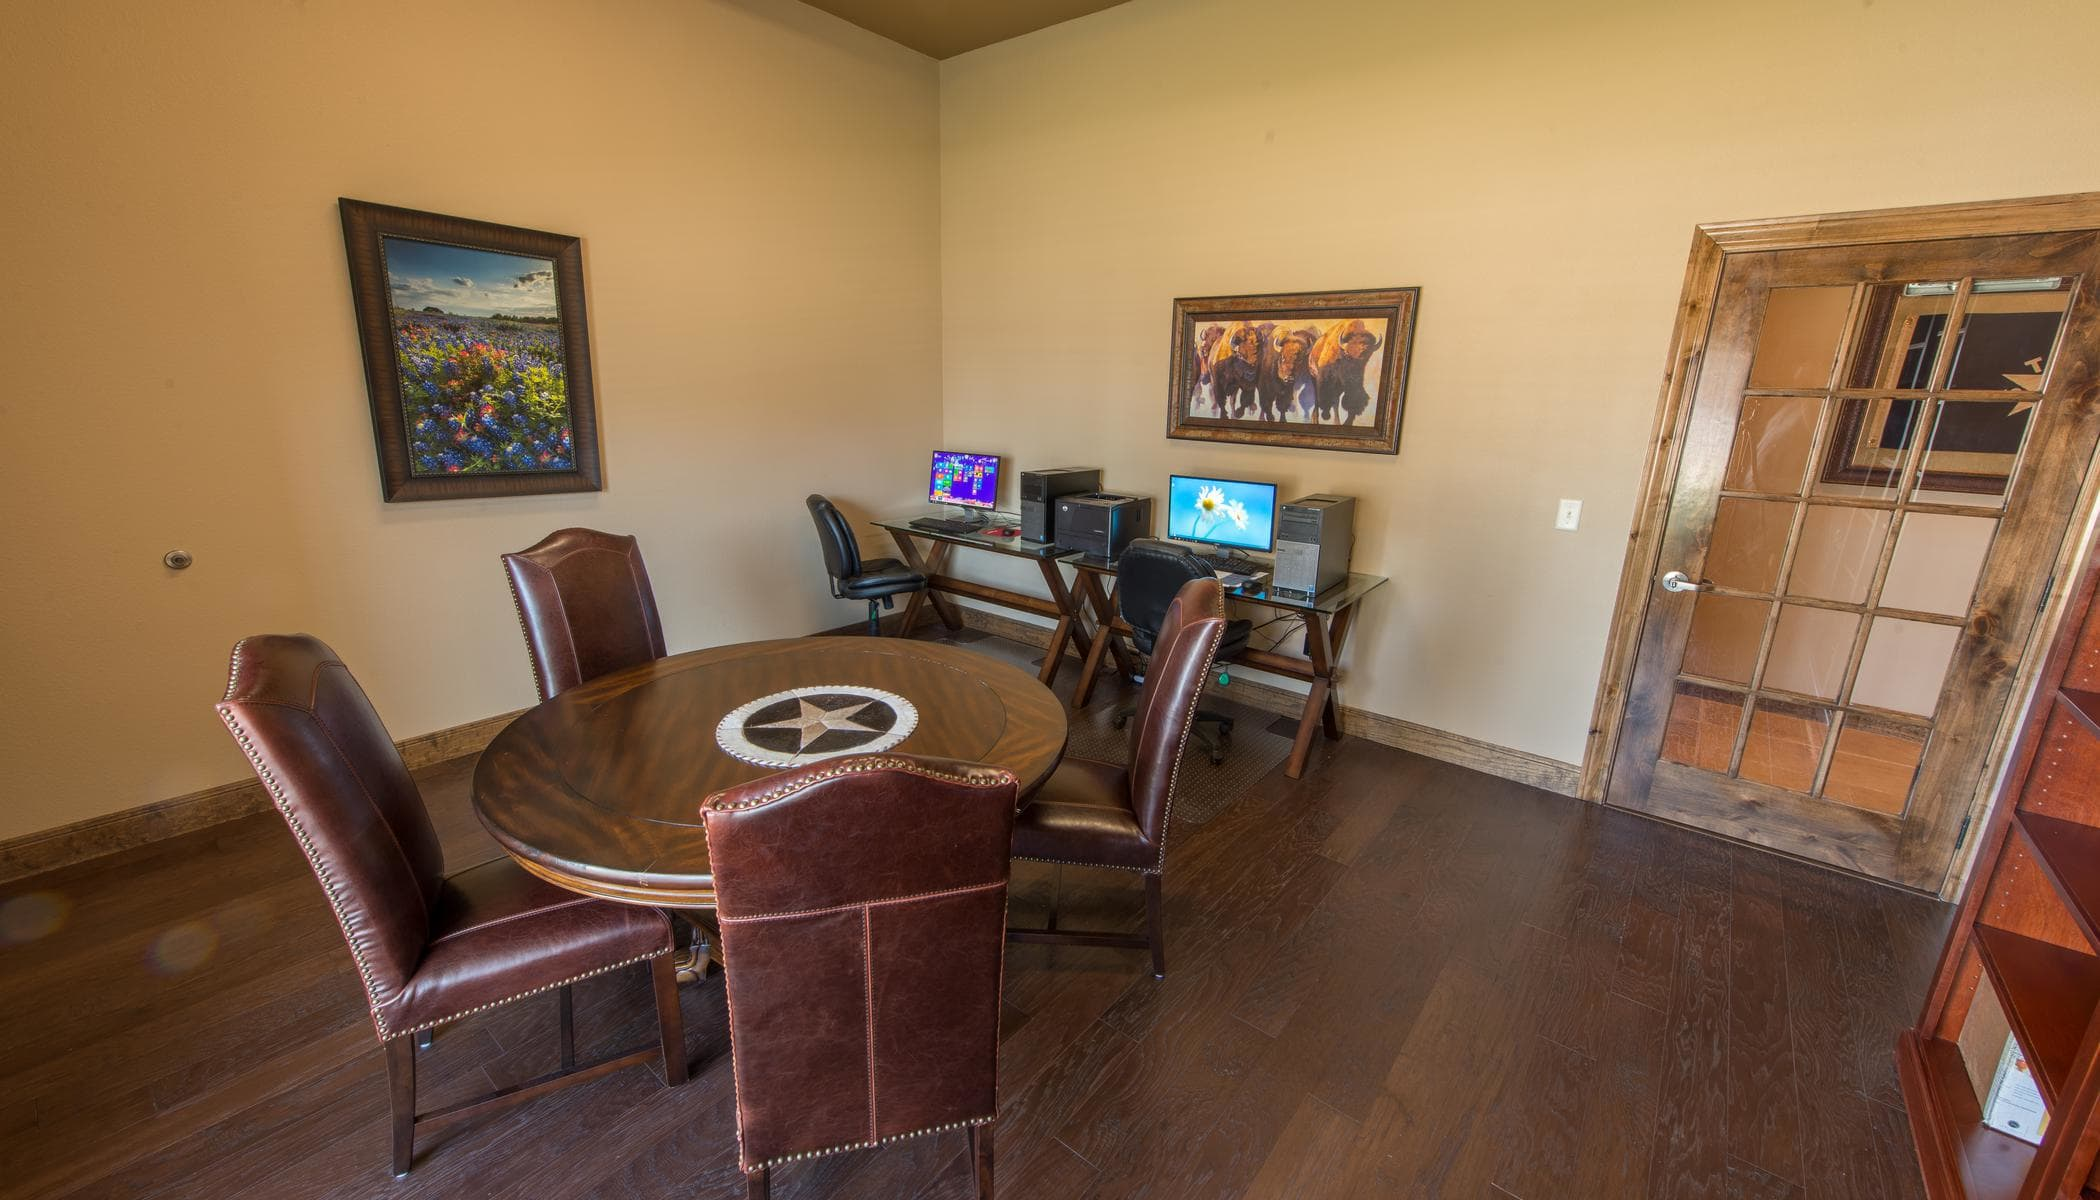 Computers for residents at The Reserves at South Plains in Lubbock, Texas